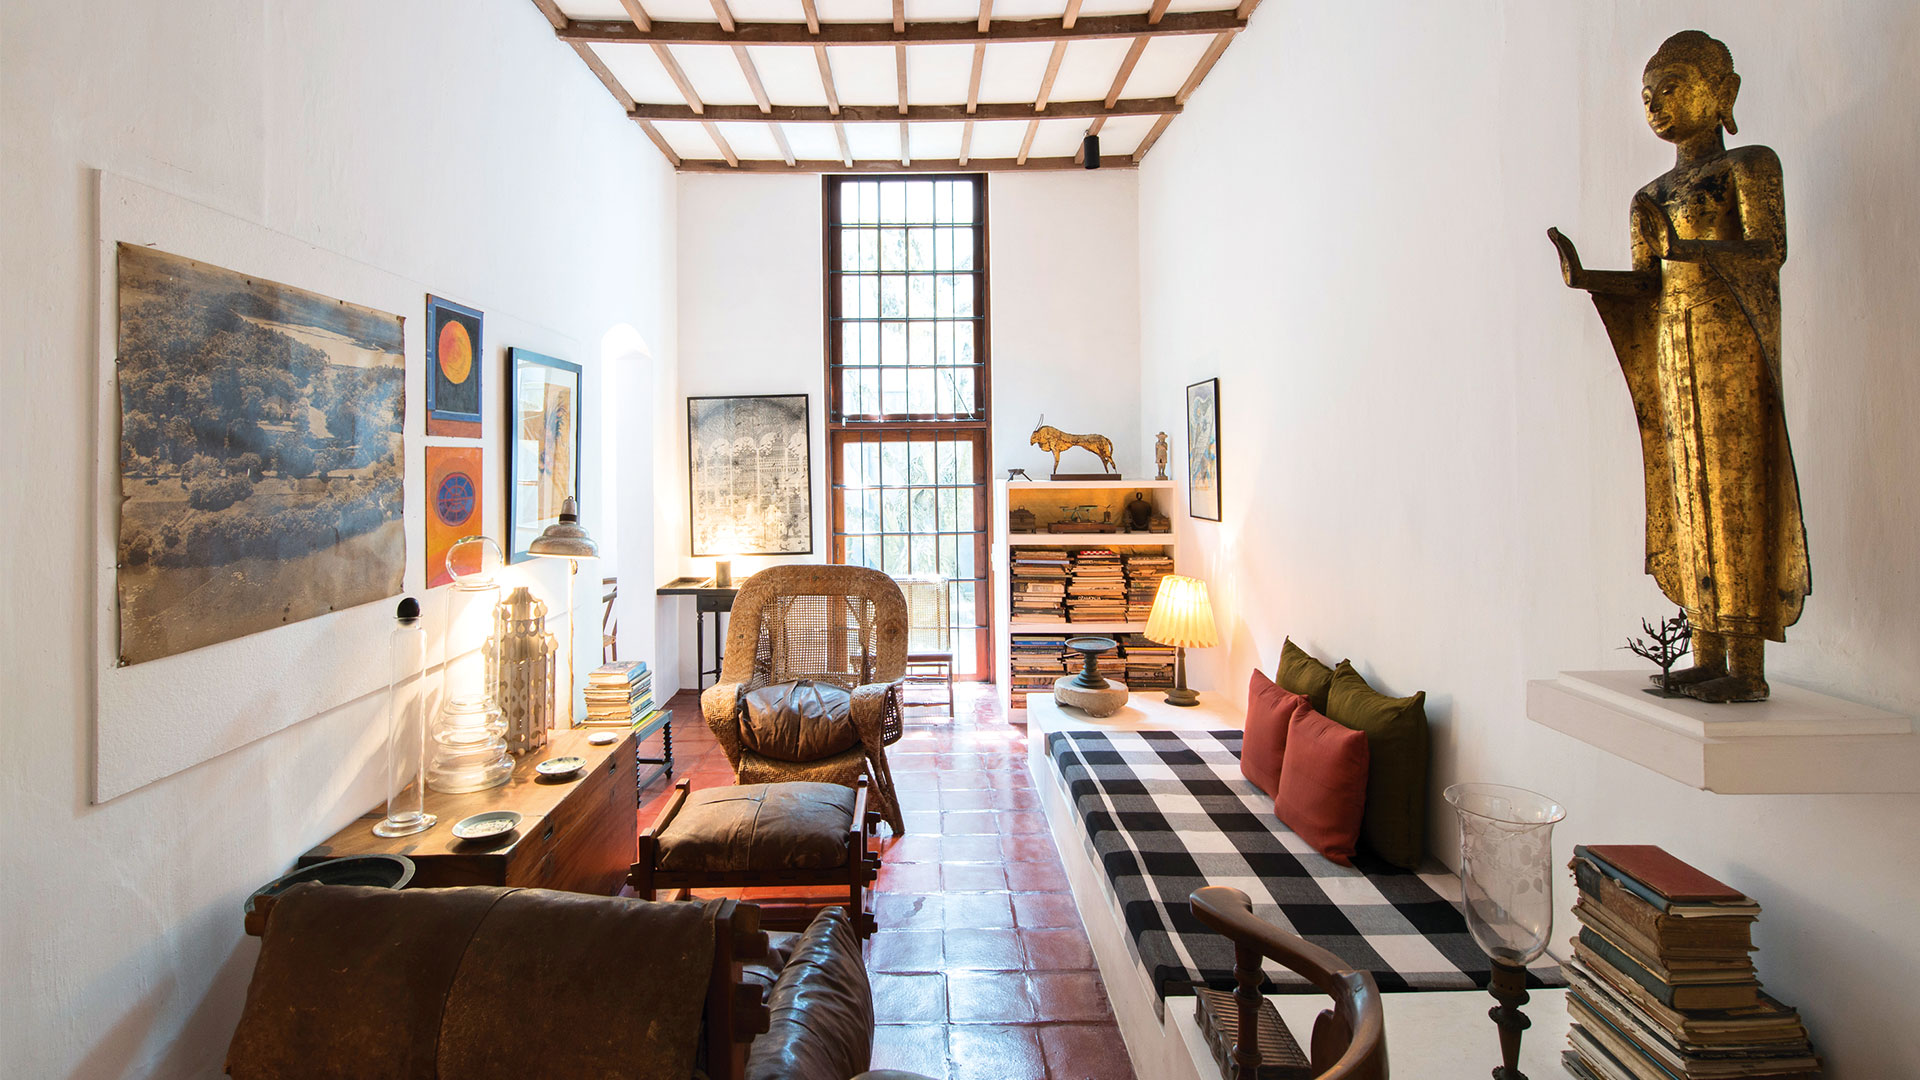 10 Projects by Geoffrey Bawa that made him the pioneer of Tropical Modernism - Geoffrey Bawa's Town House, Sri Lanka